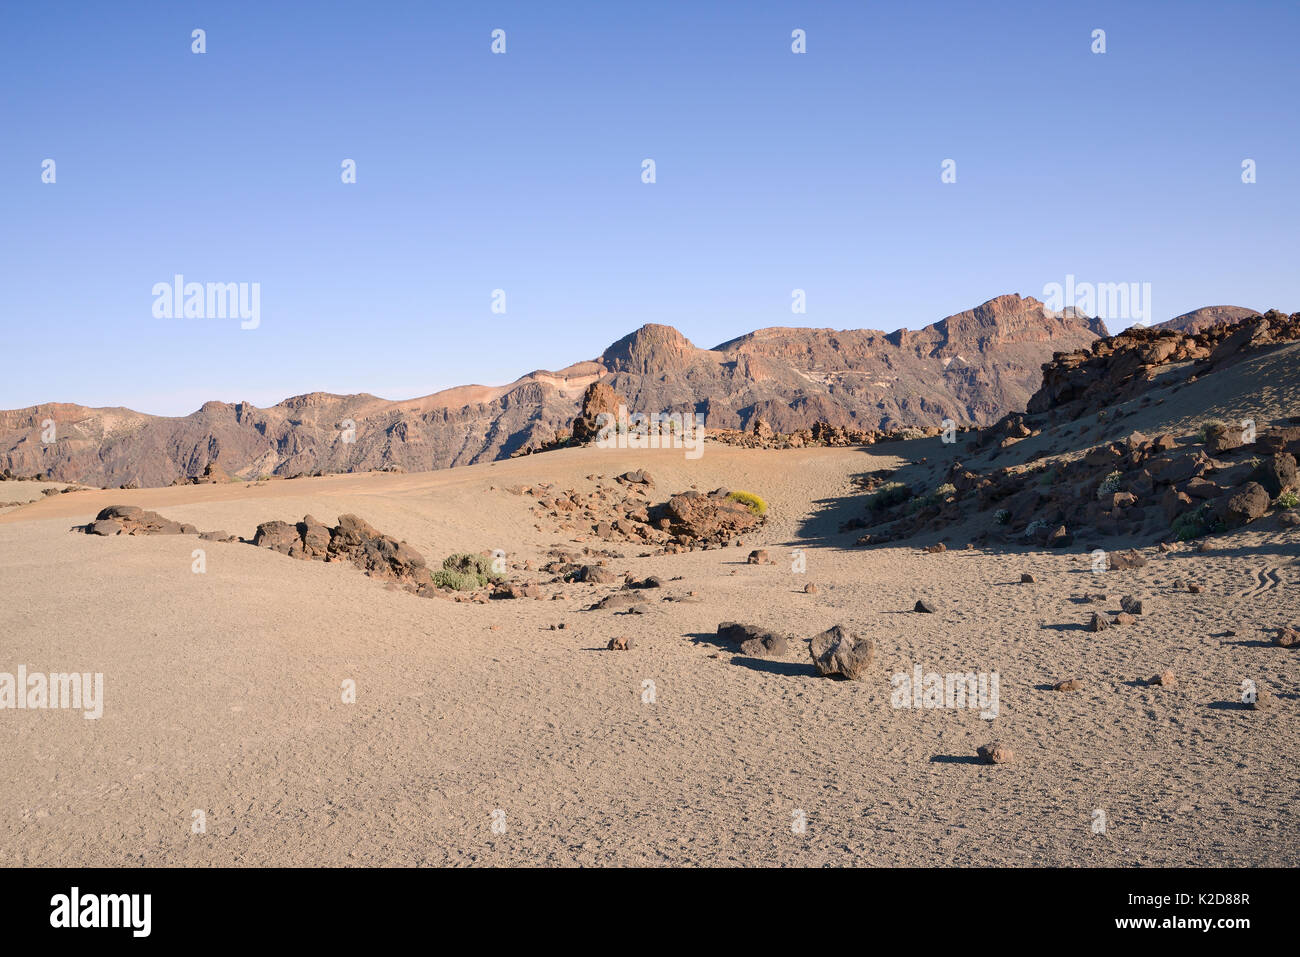 Extensive field of pumice stone surrounded by old volcanos, Las Canadas caldera, Teide National Park, Tenerife, May 2014. - Stock Image